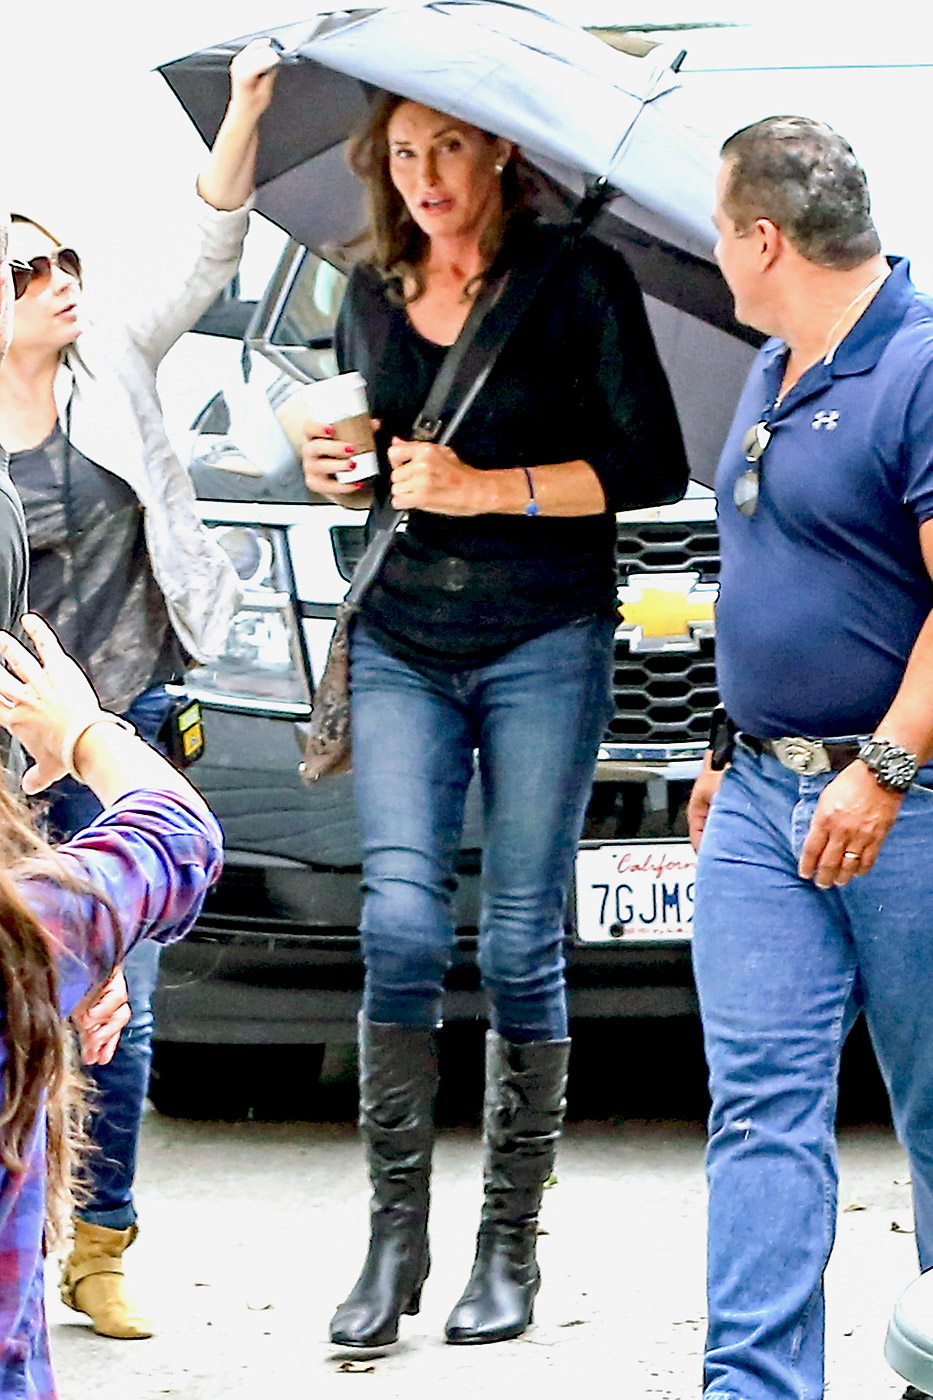 Caitlyn Jenner is seen filming her eight-part docuseries, I Am Cait, at the LGBT (Lesbian, Gay, Bi-sexual, Transgender) center in Hollywood, Calif. on June 9, 2015.|